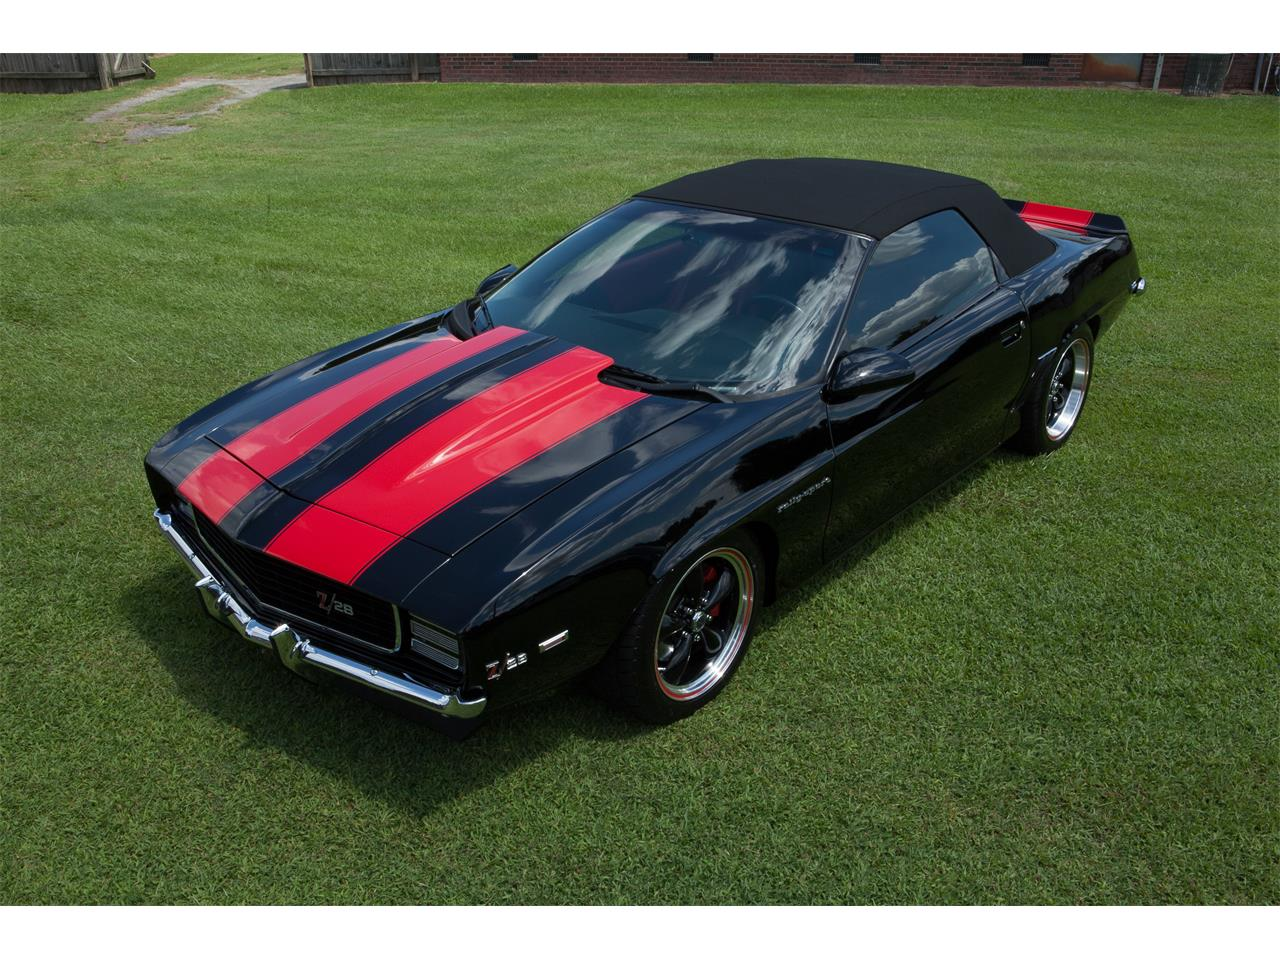 Large Picture of 2002 Camaro SS Z28 located in North Carolina Offered by a Private Seller - LSYD